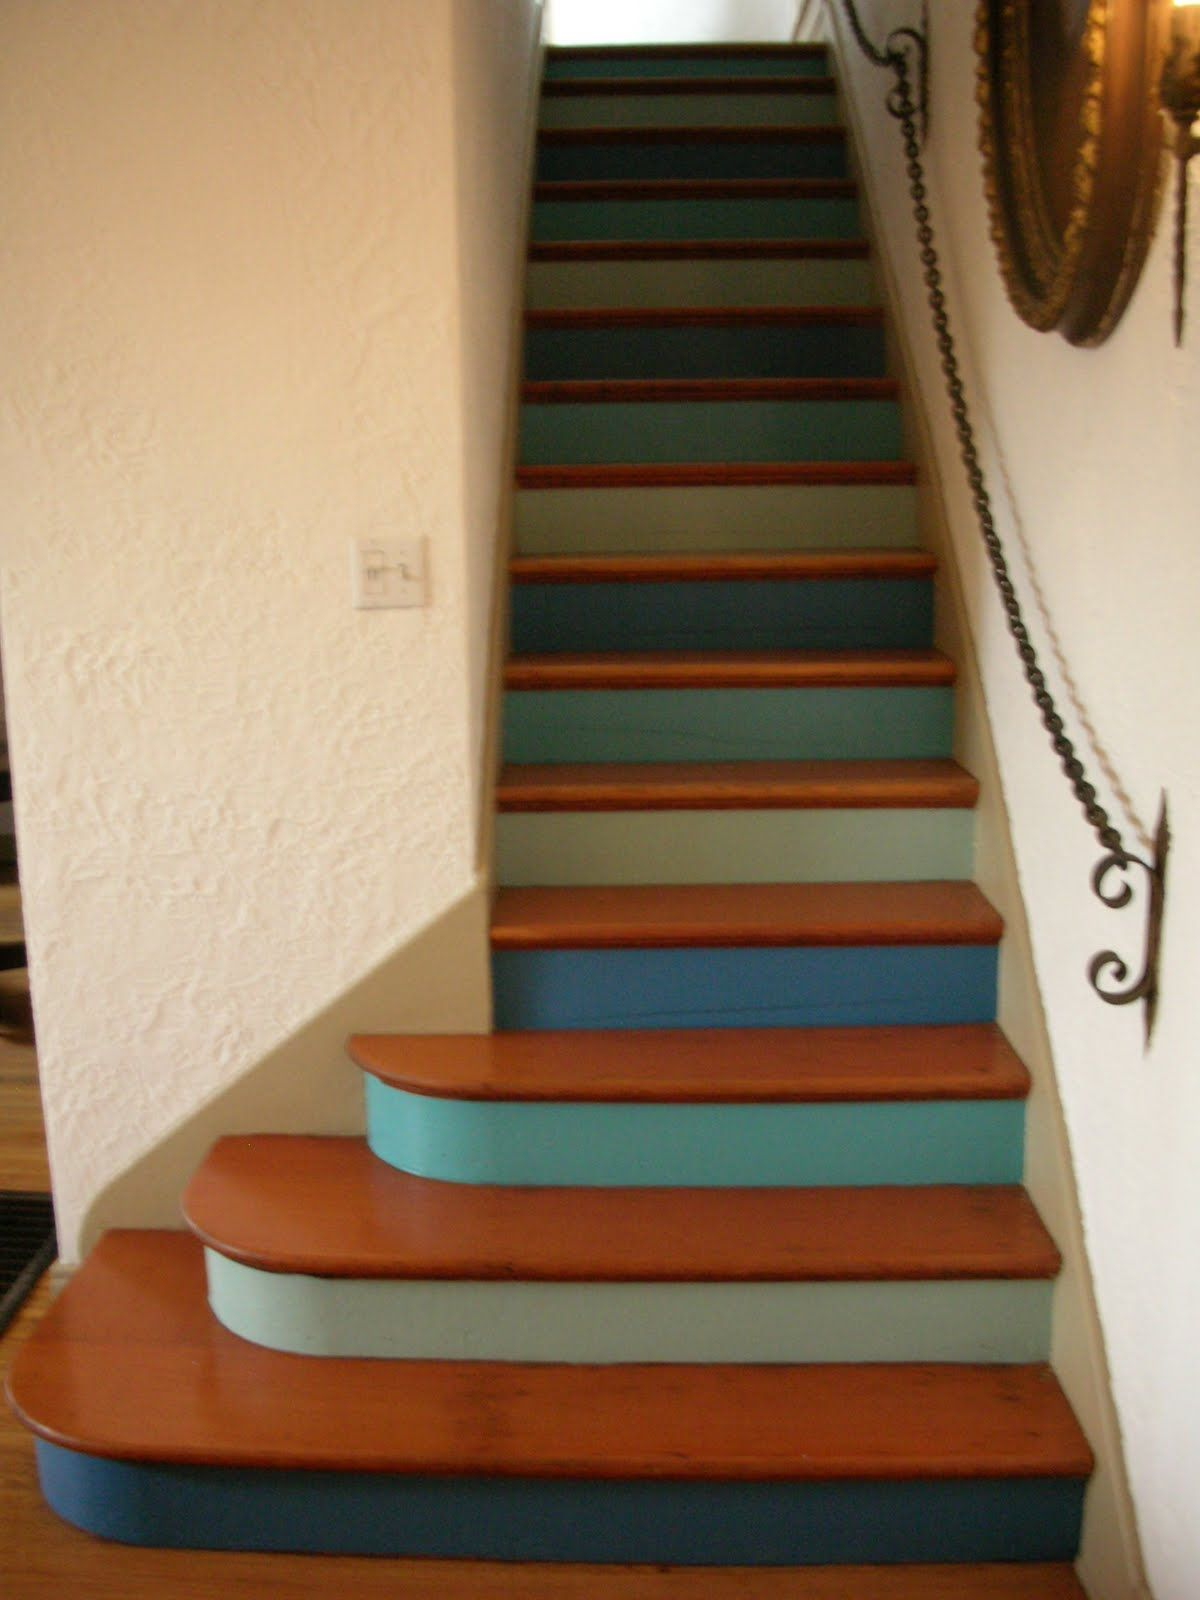 Painted Stairs If We Got Rid Of The Carpet On Our Stairway Someday It Would Be